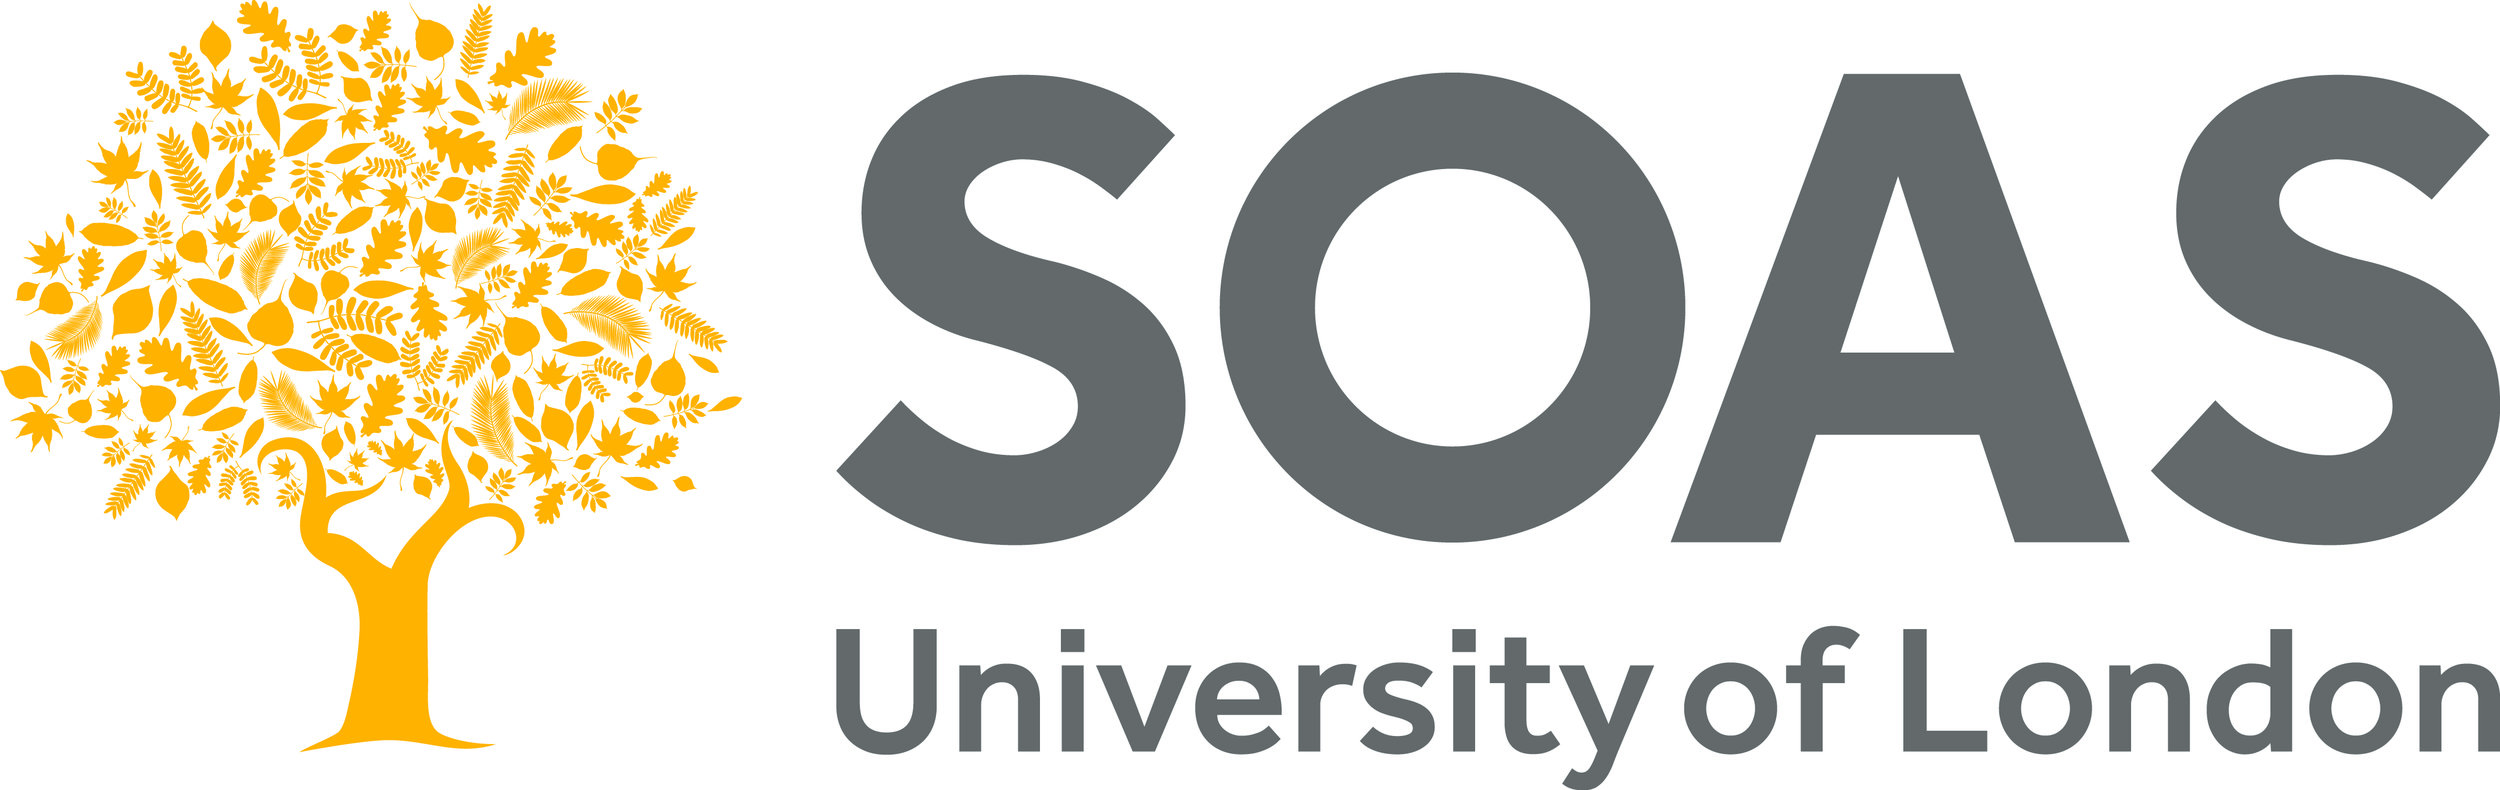 SOAS_LARGE LOGO VERSION 18.07.12.jpg